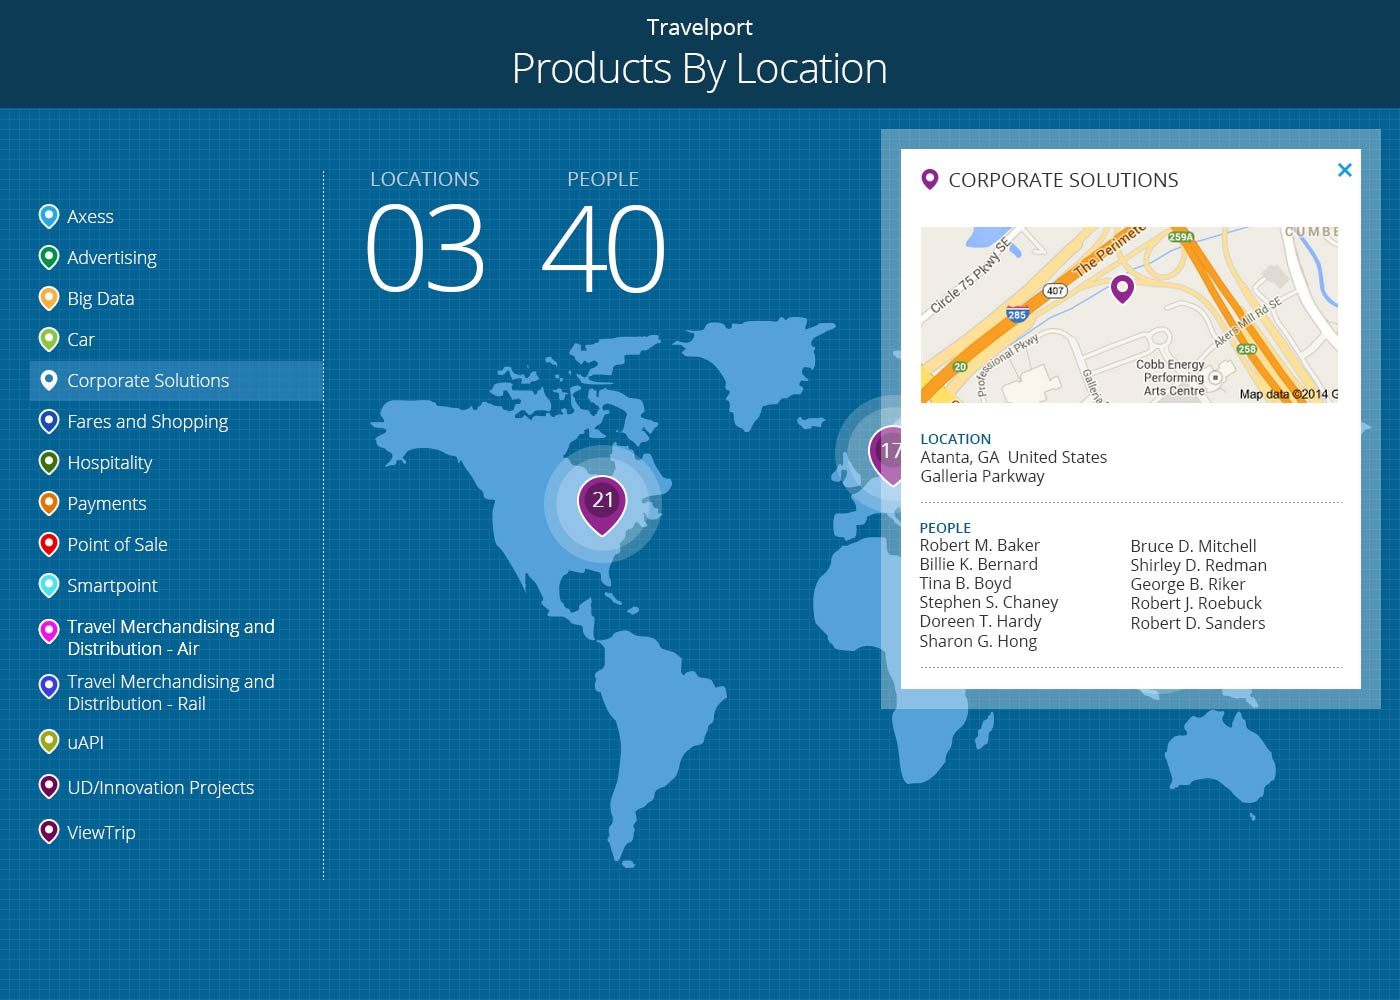 Products By Location Product Details